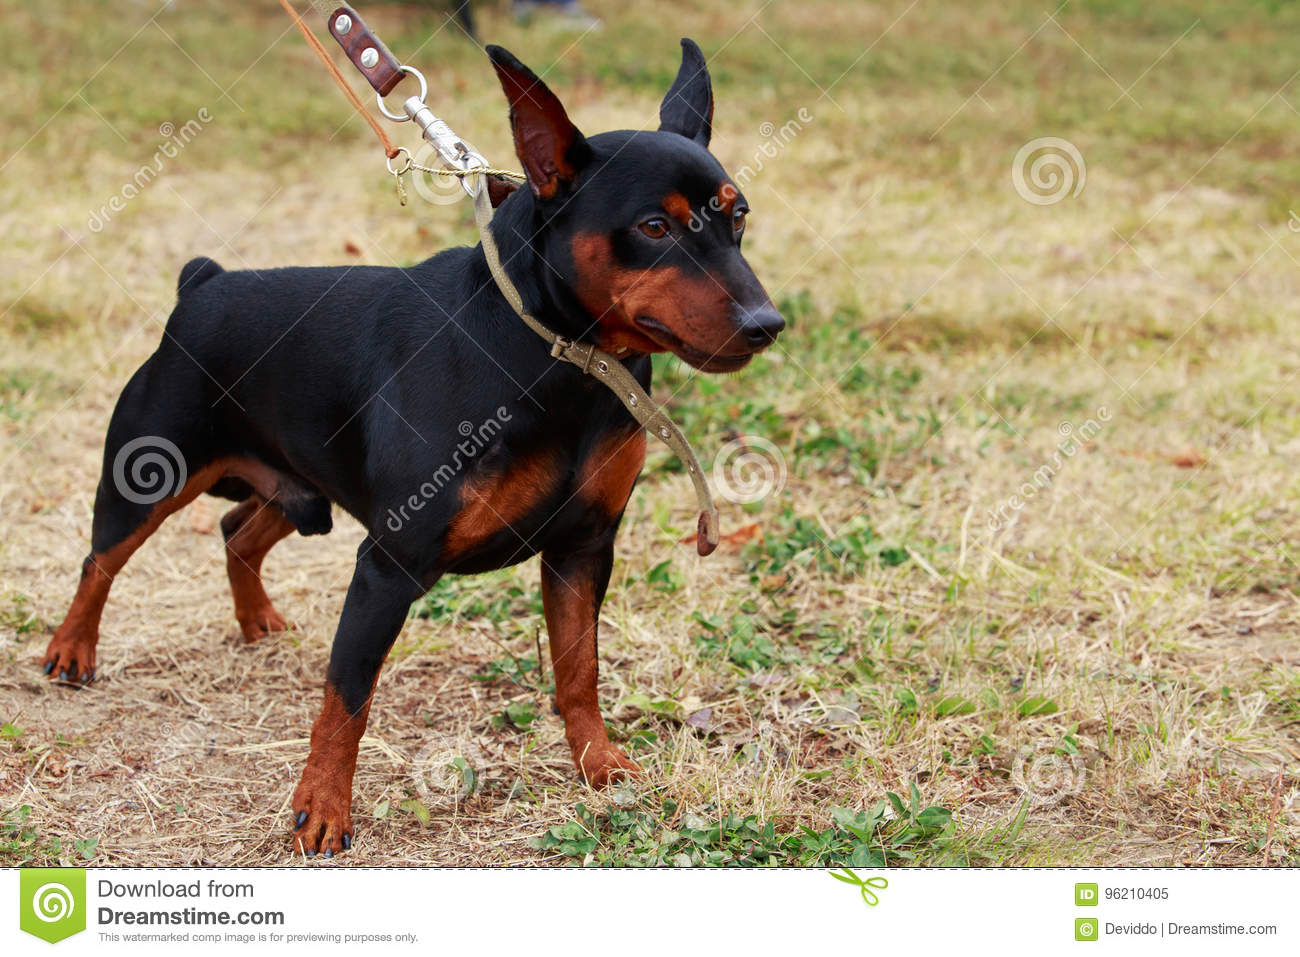 Dog Breed Mini Pinscher Stock Image Image Of Grass Brown 96210405